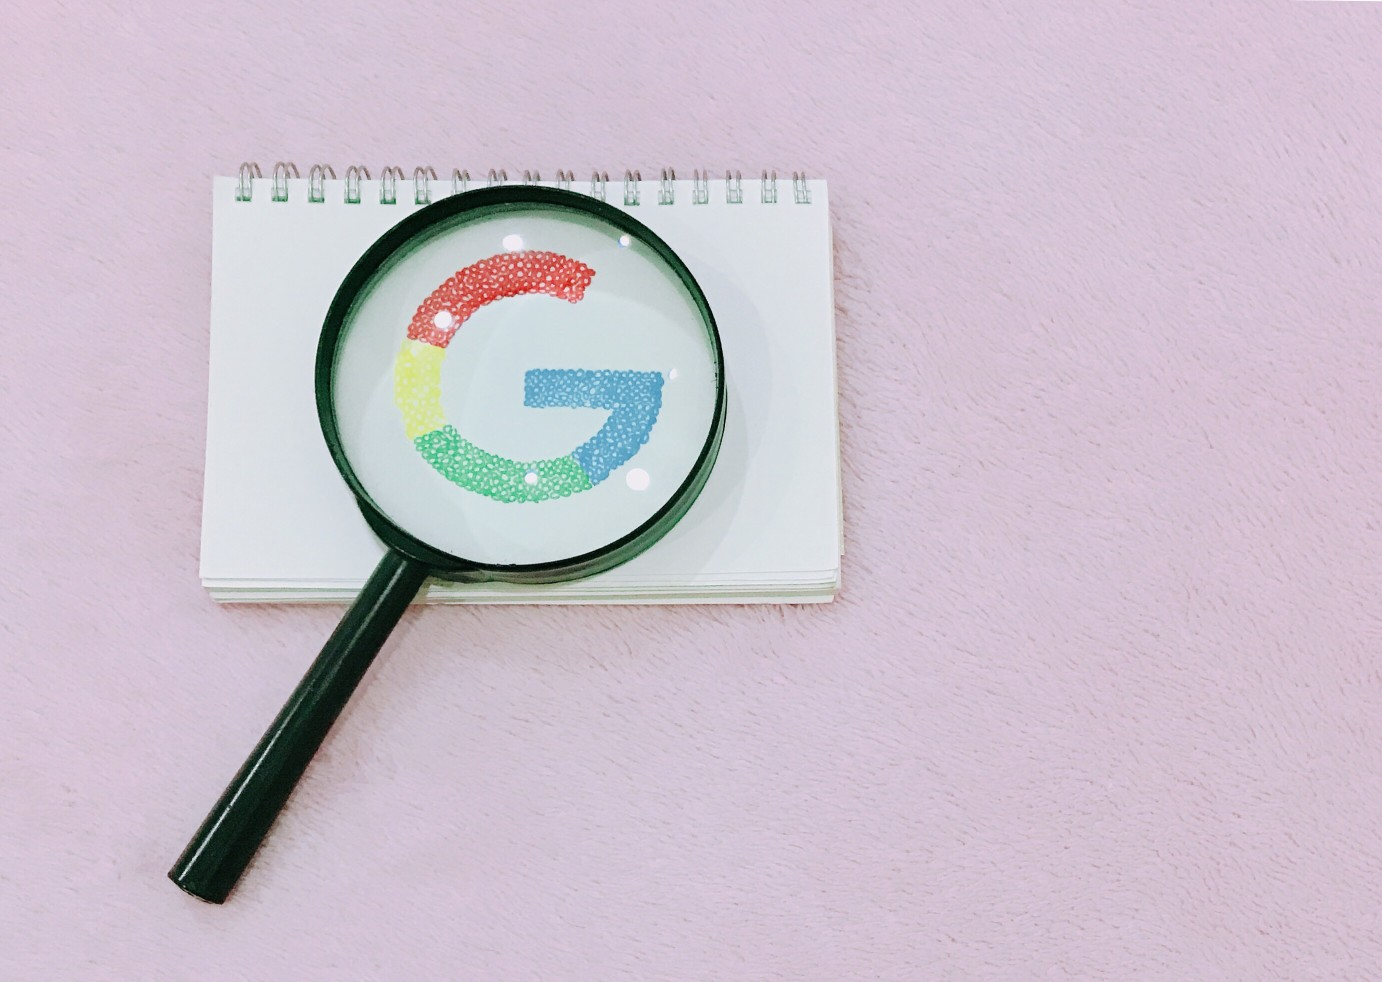 4 things you need to find out about your SEO agency